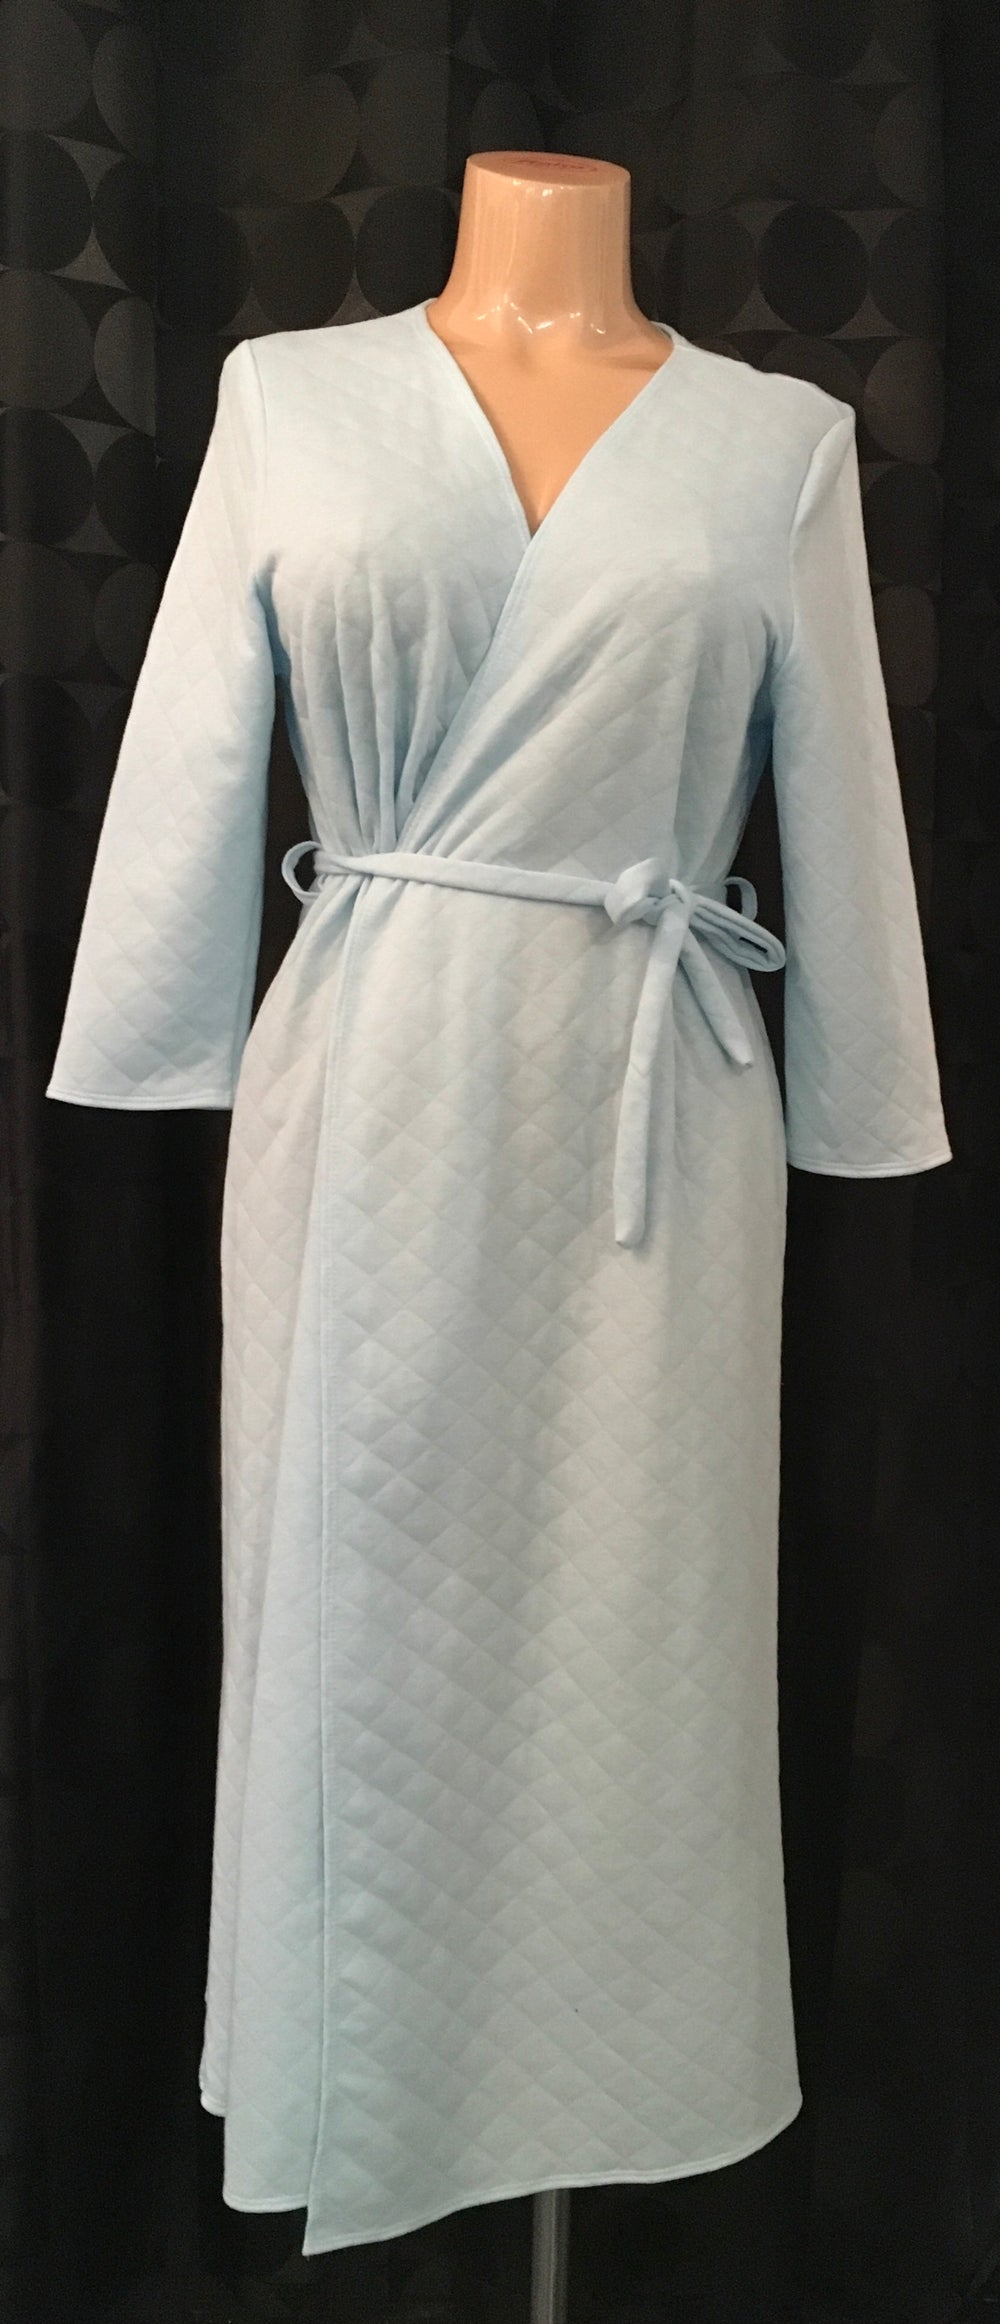 Quilted Robe - Size Small